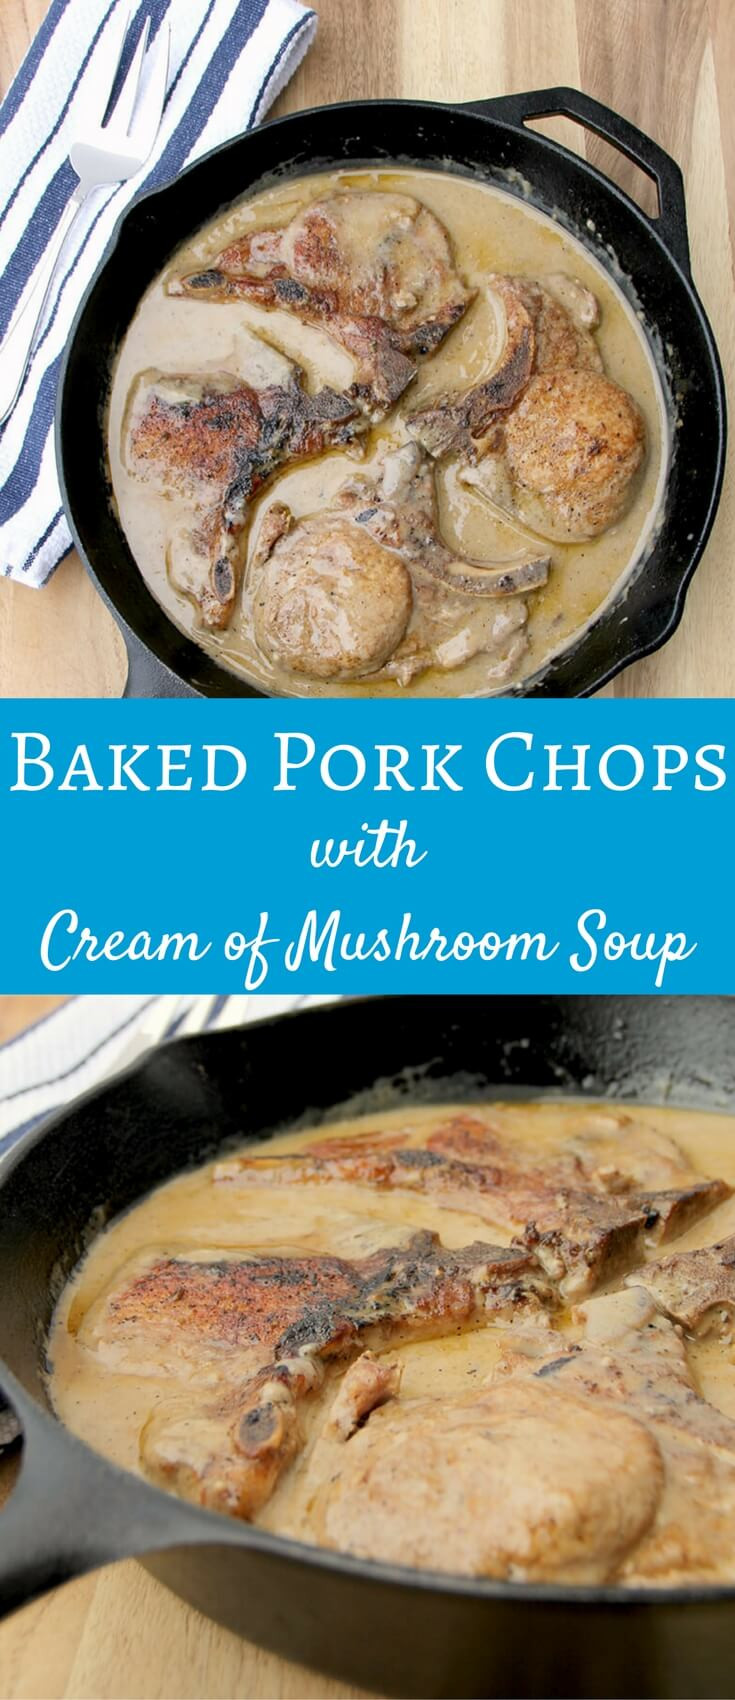 Pork Chops With Cream Of Mushroom Soup In Oven  pork chops with cream of mushroom soup in oven with rice